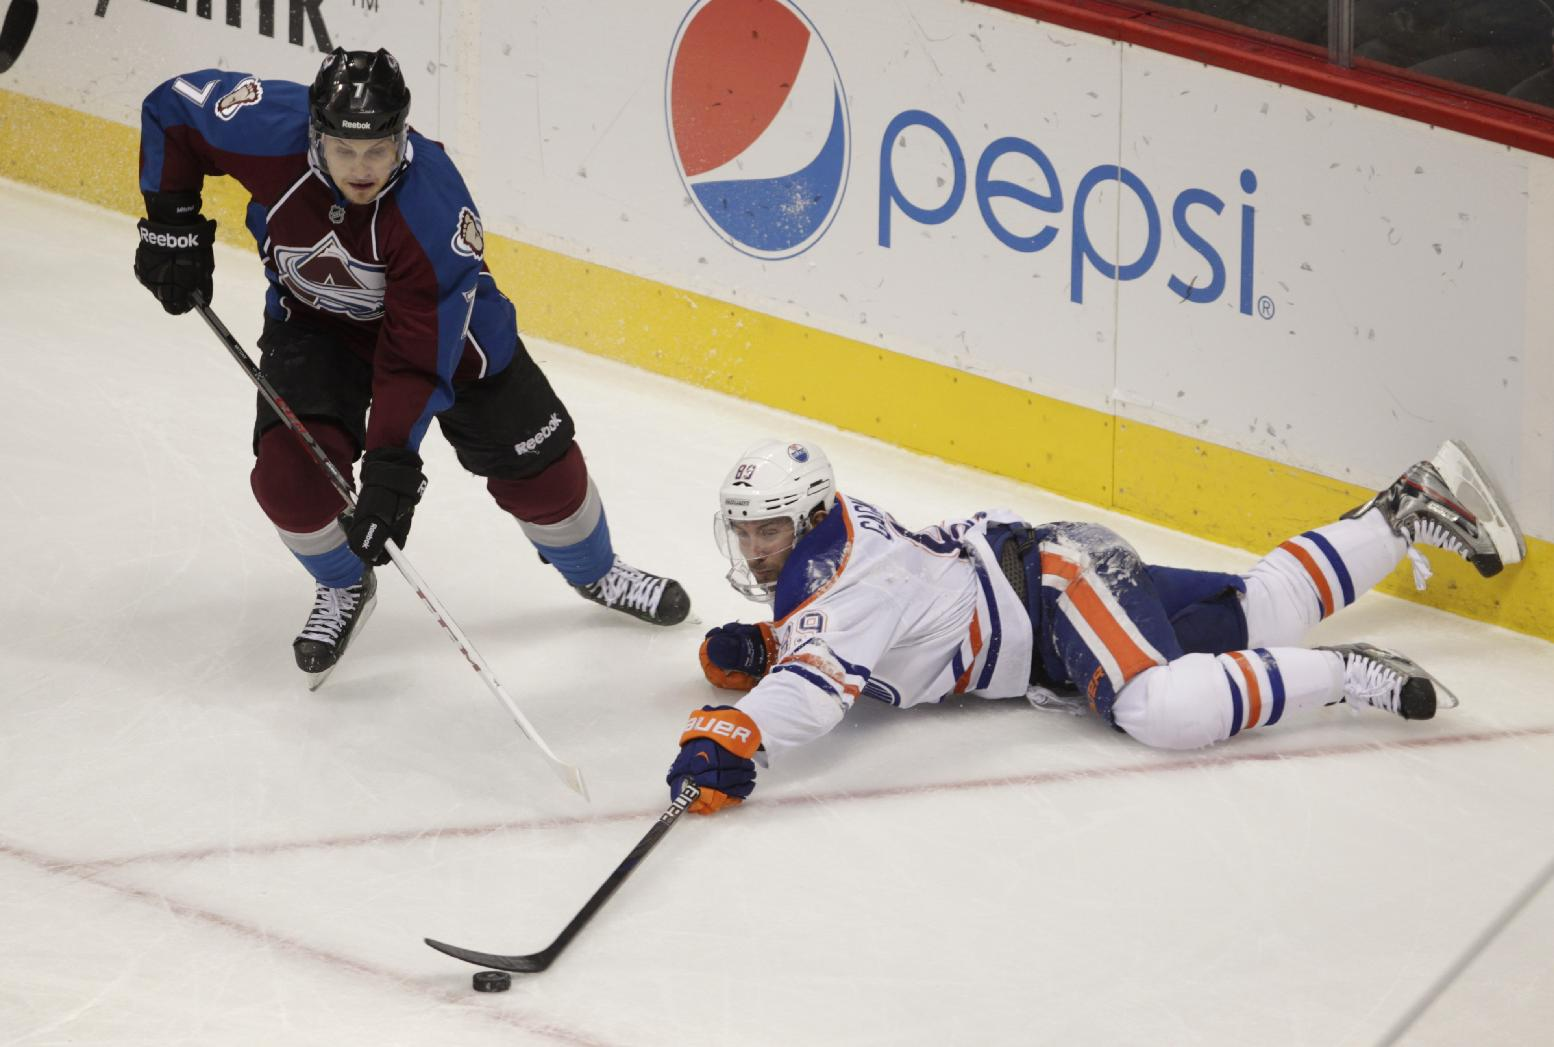 Talbot's SH goal lifts Avalanche over Oilers 4-2